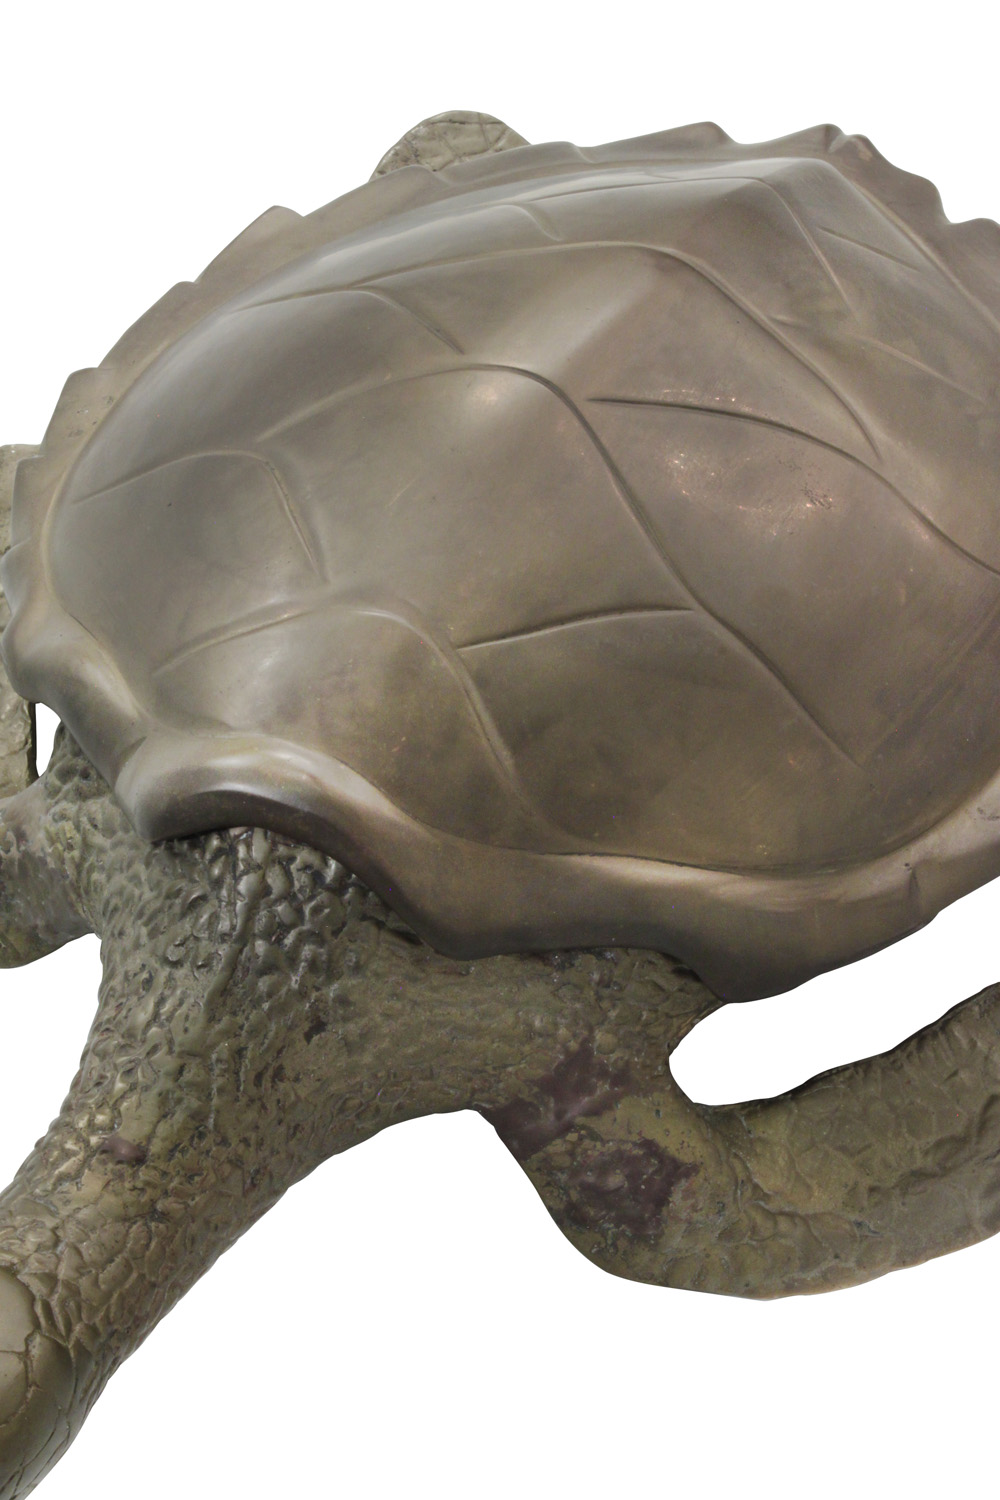 70s 45 brass turtle sculpture102 detail5 hires.jpg